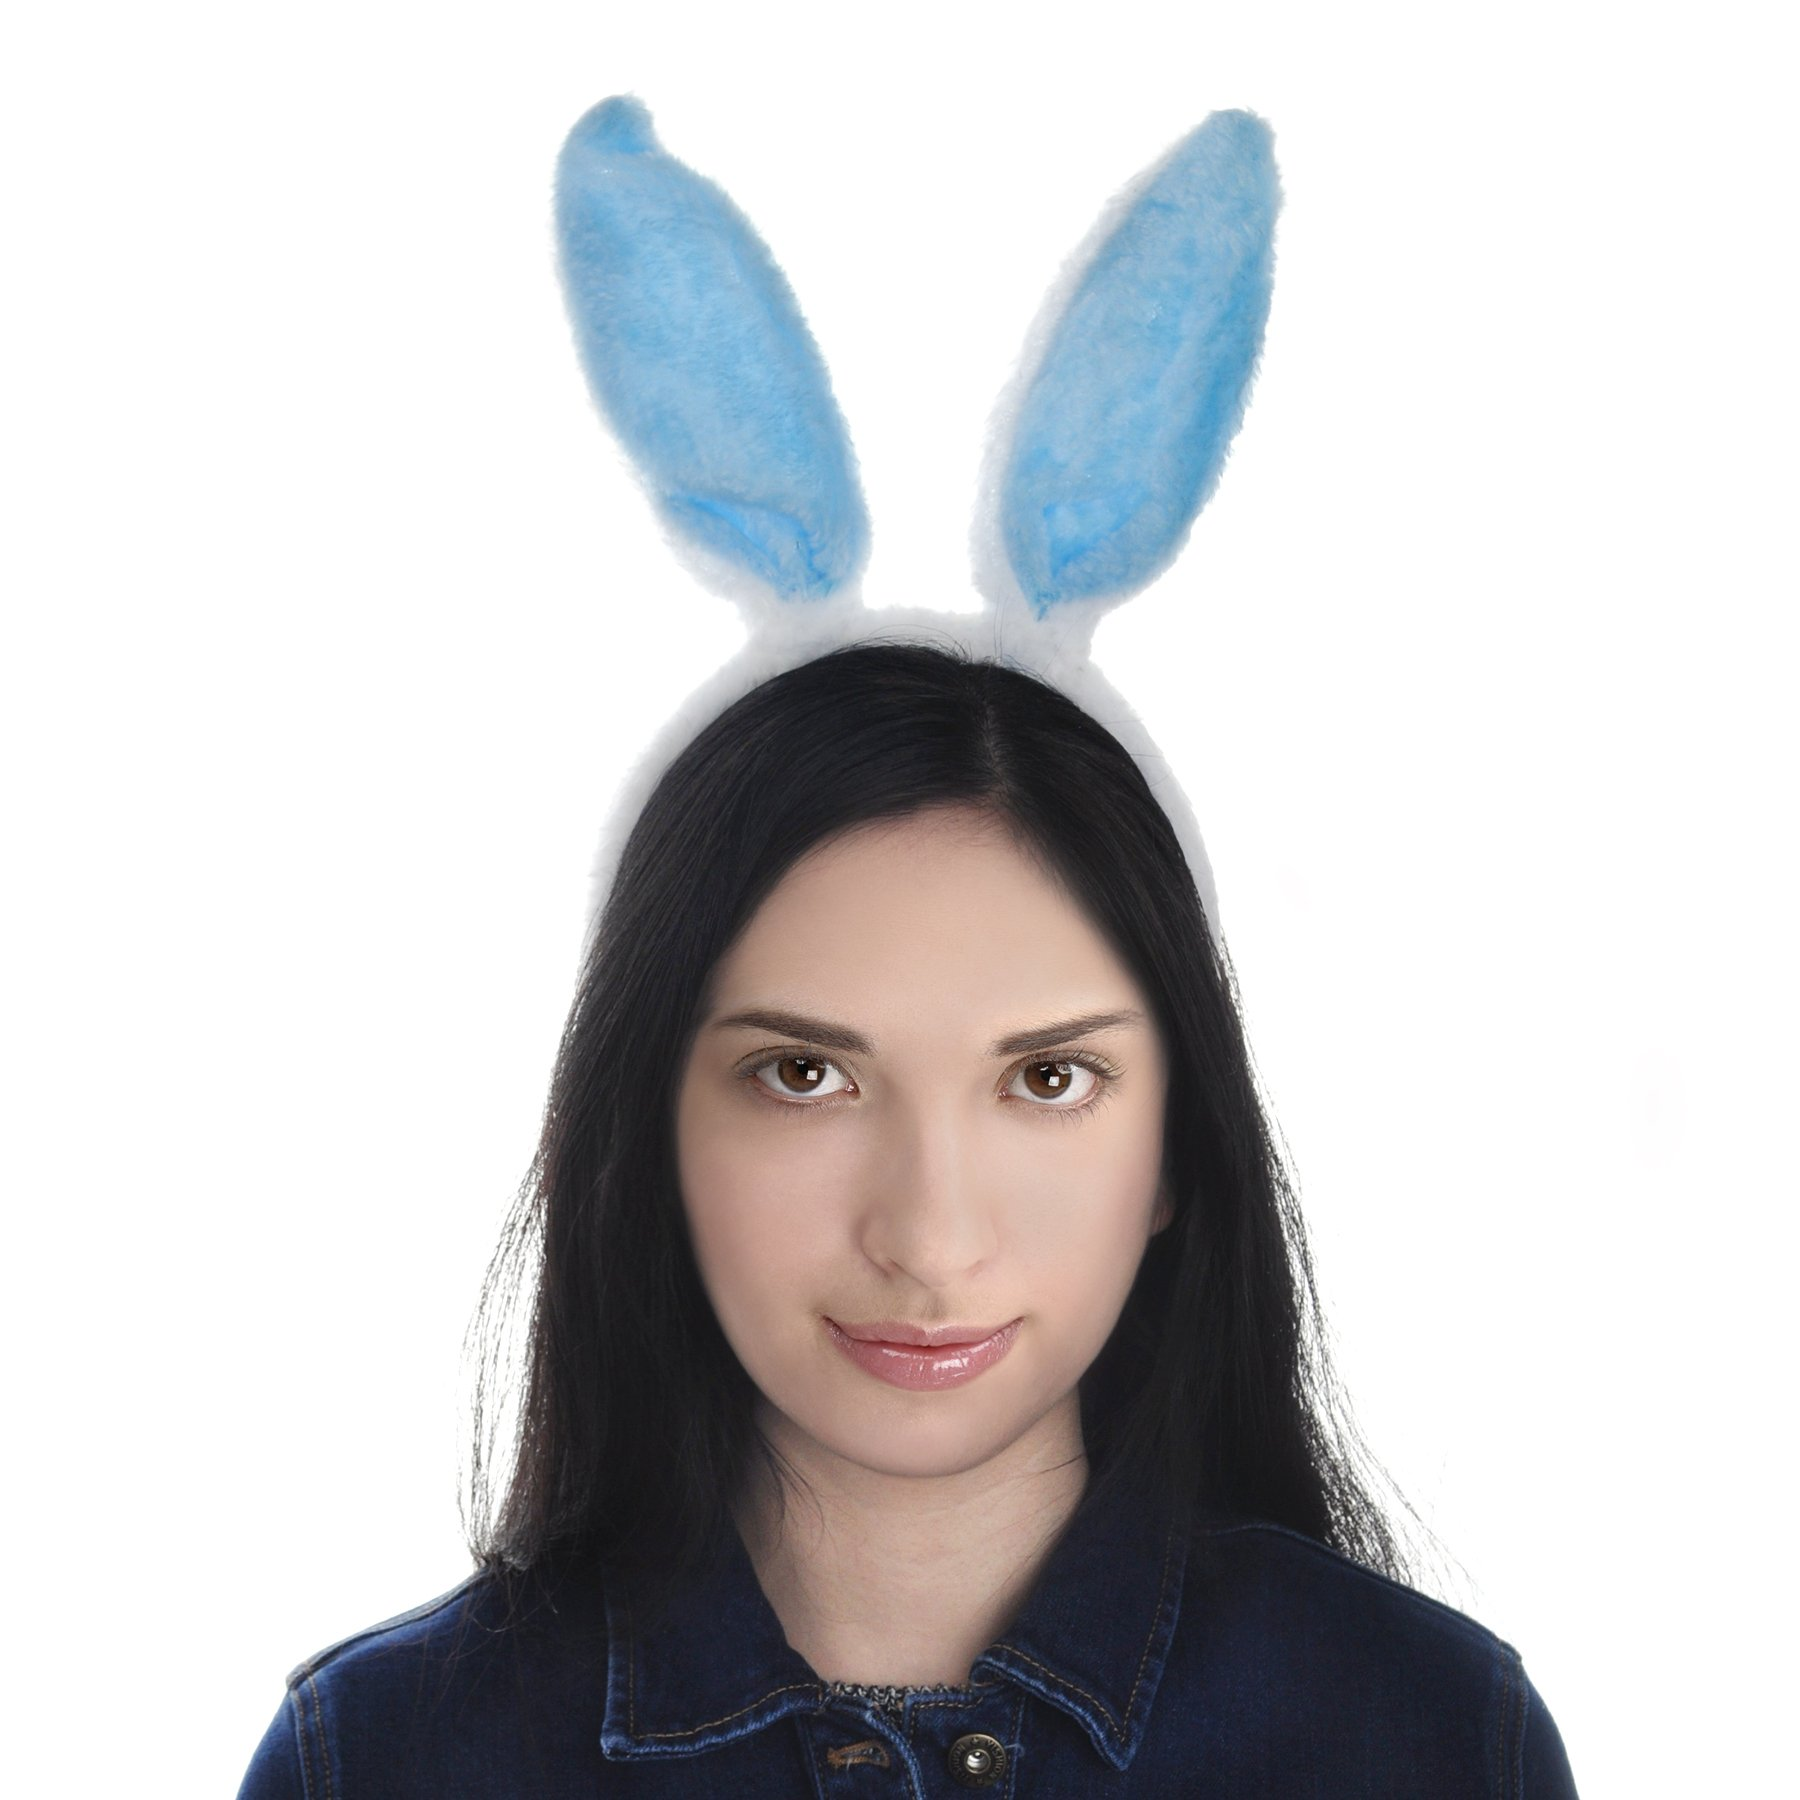 Toptie Easter Bunny Ears Headband, Soft Touch Plush Cosplay Party Suppliers-White-1pc by TOPTIE (Image #7)